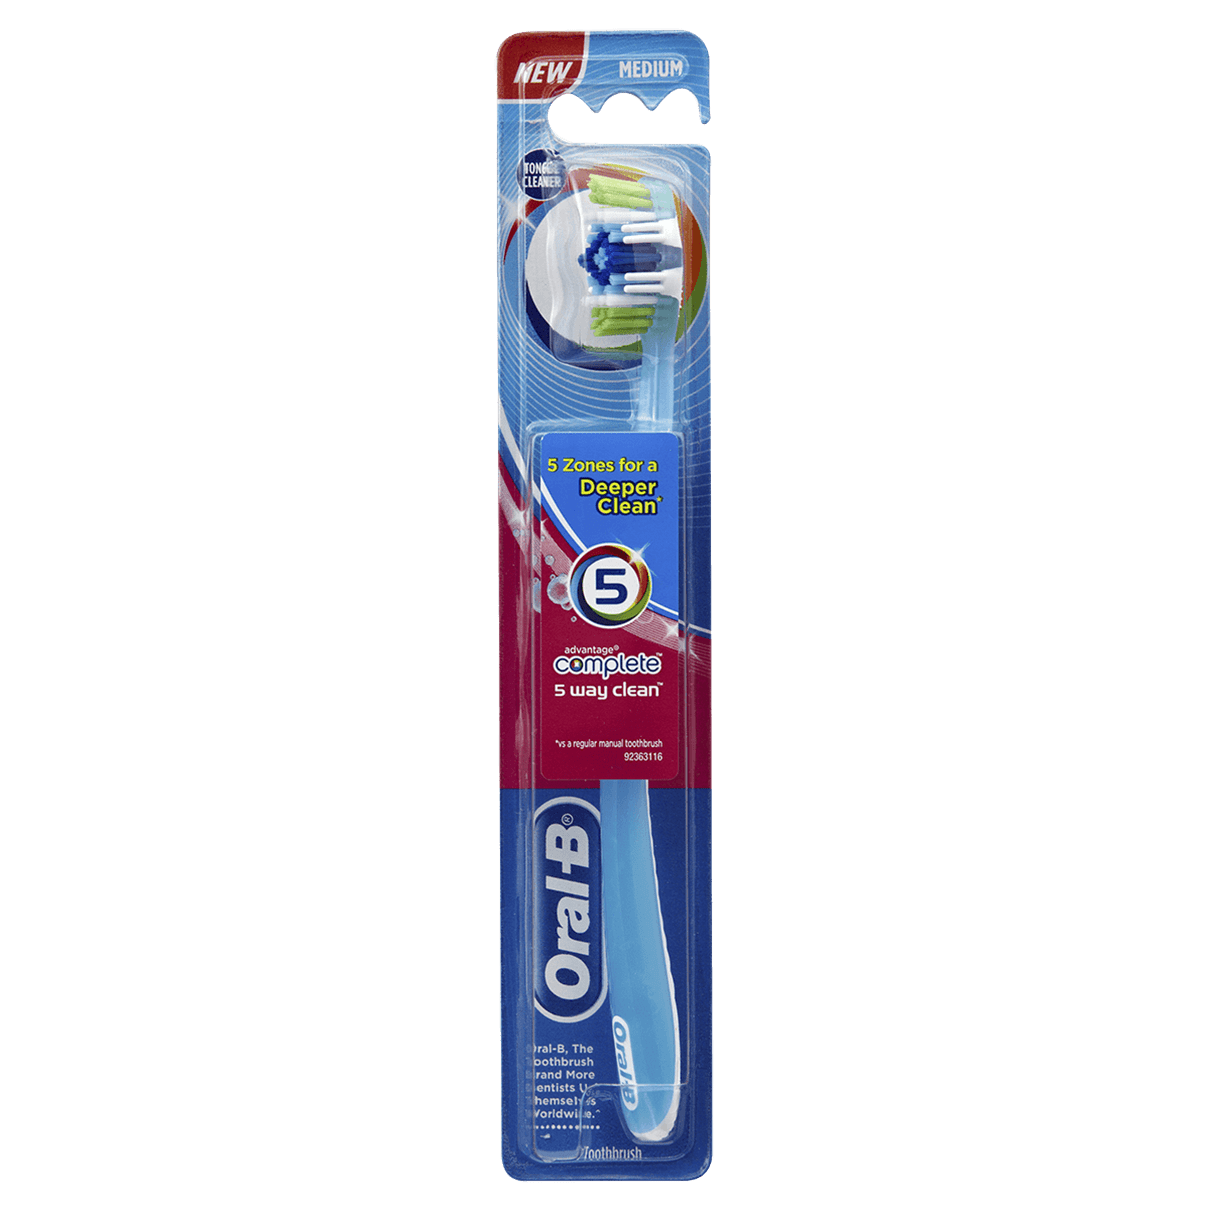 Oral B Advantage Complete 5-Way Clean Toothbrush